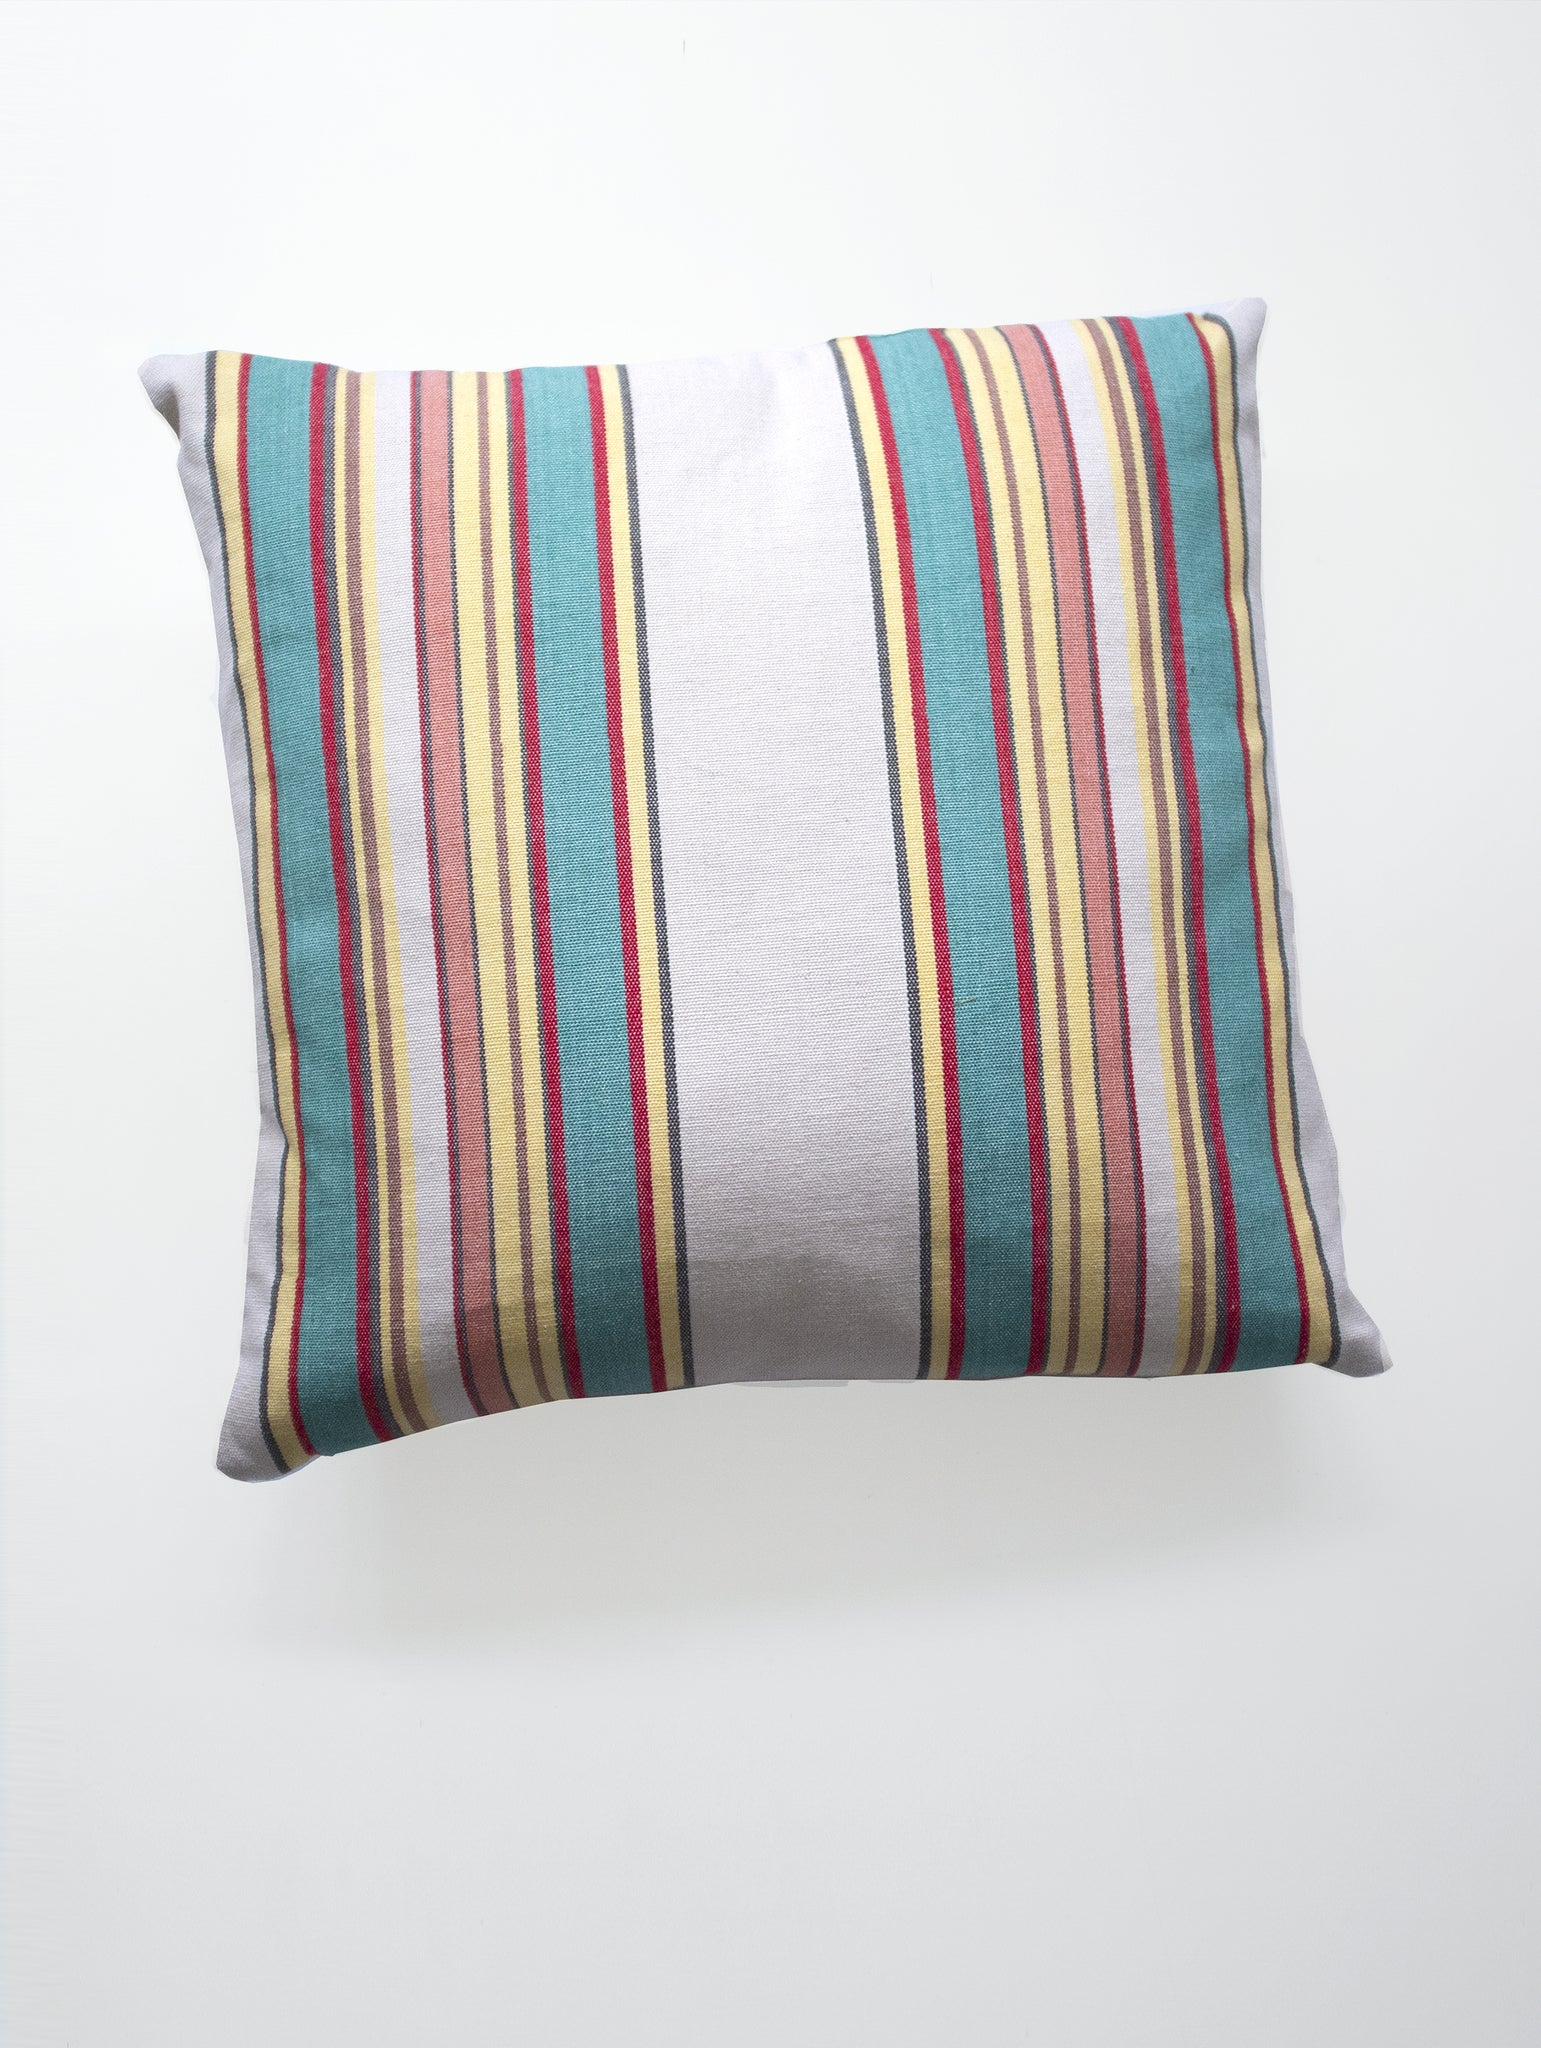 DANDY STAR CUSHION - STRIPE No.2